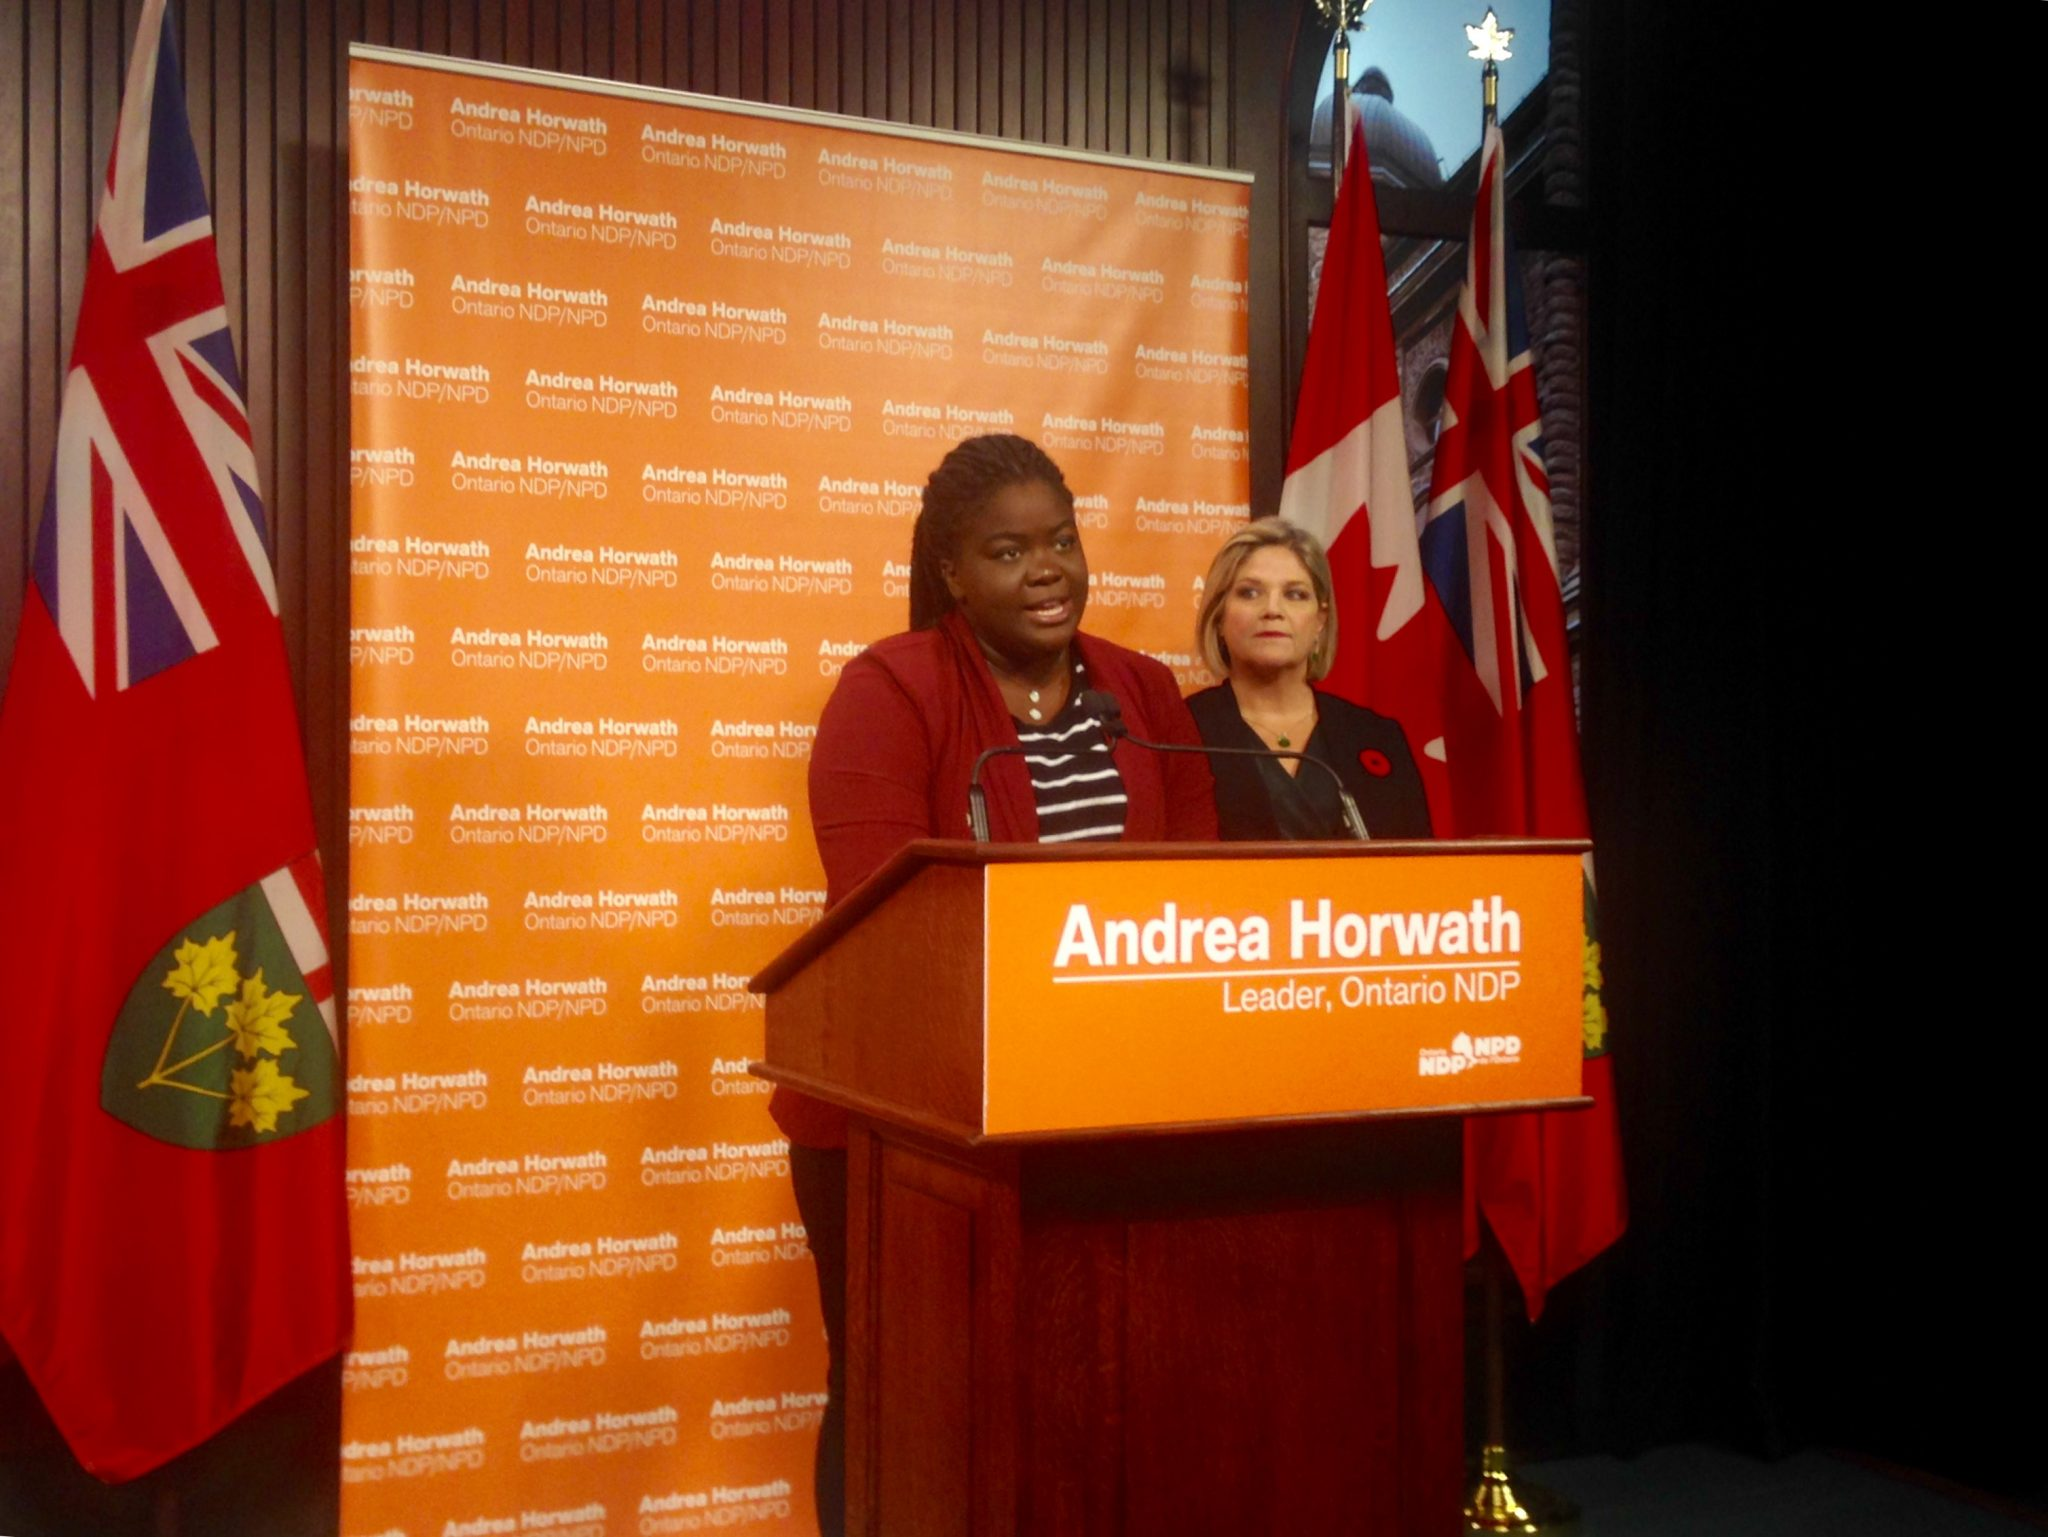 Horwath presses for more paid leave, vacation and protections for workers